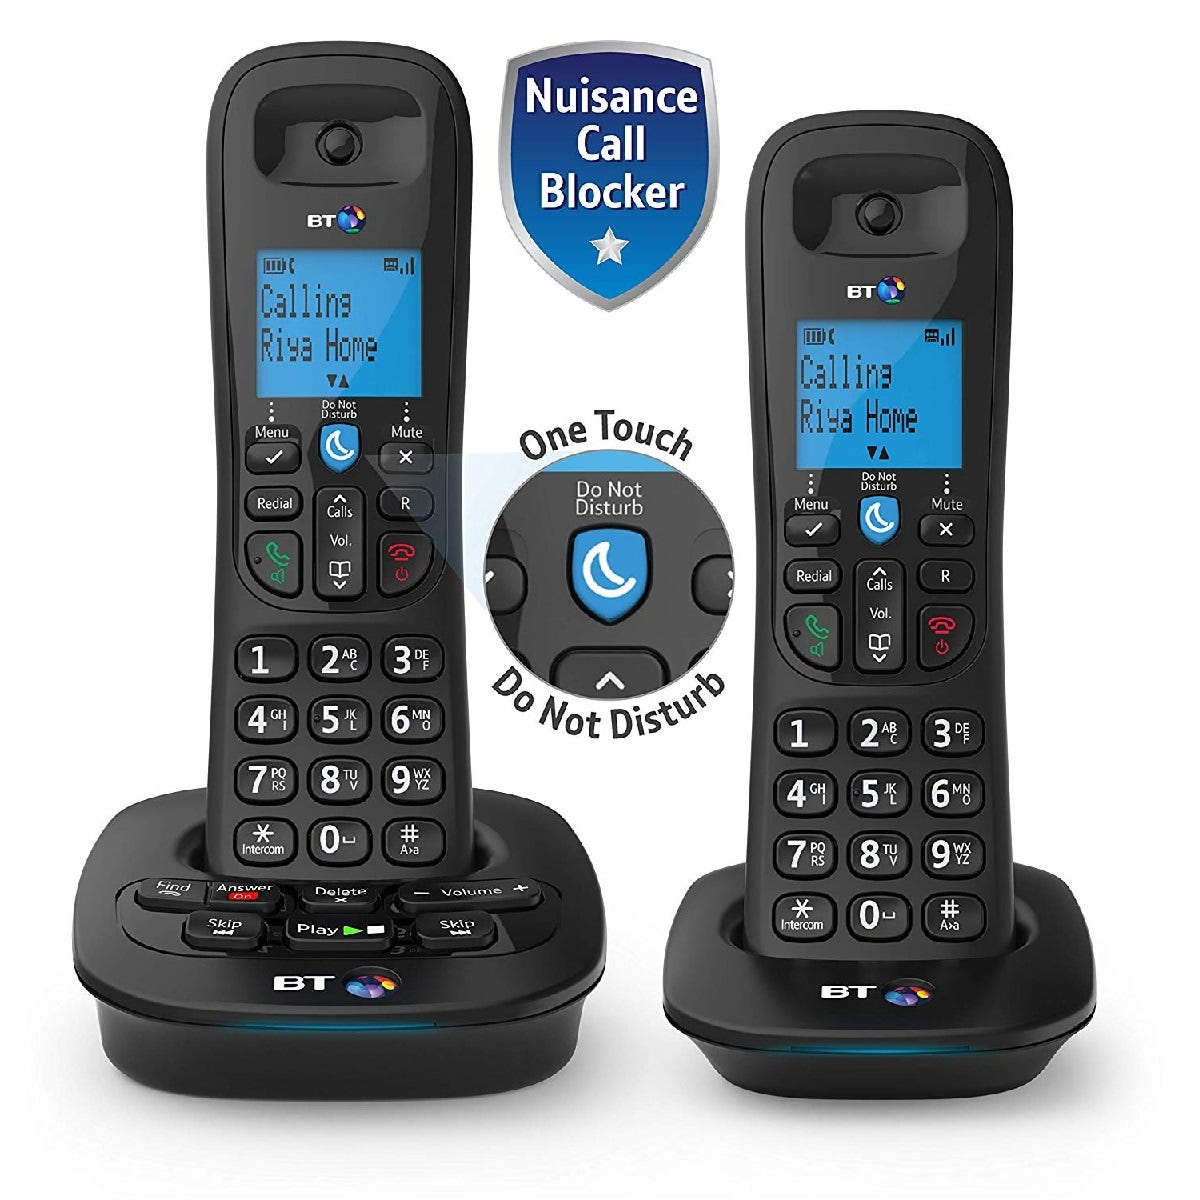 BT 3950 Twin Home Phone with Nuisance Call Blocking and Answer Machine - Black